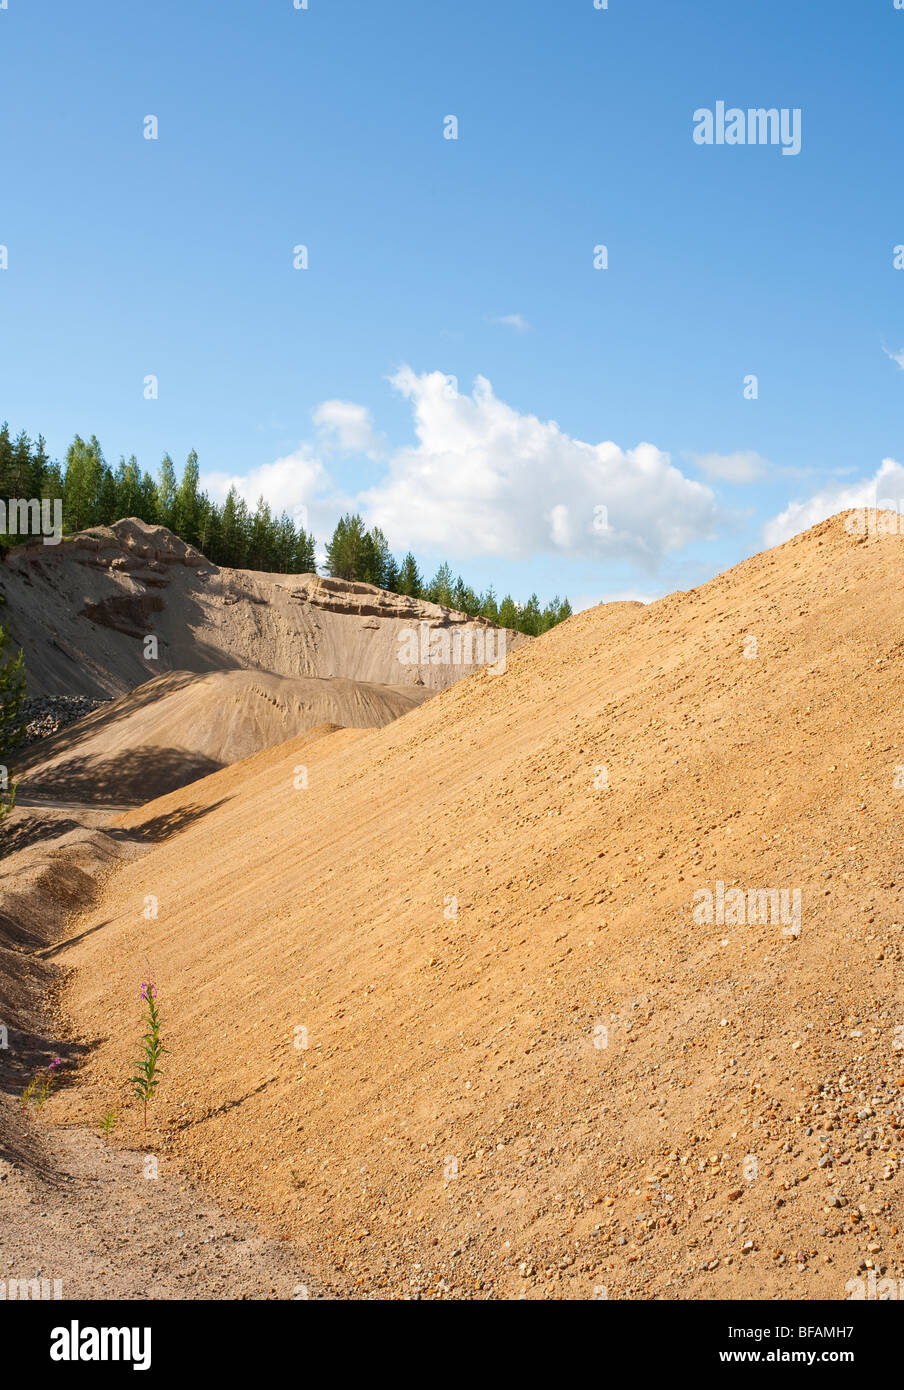 Sand pile , Finland - Stock Image